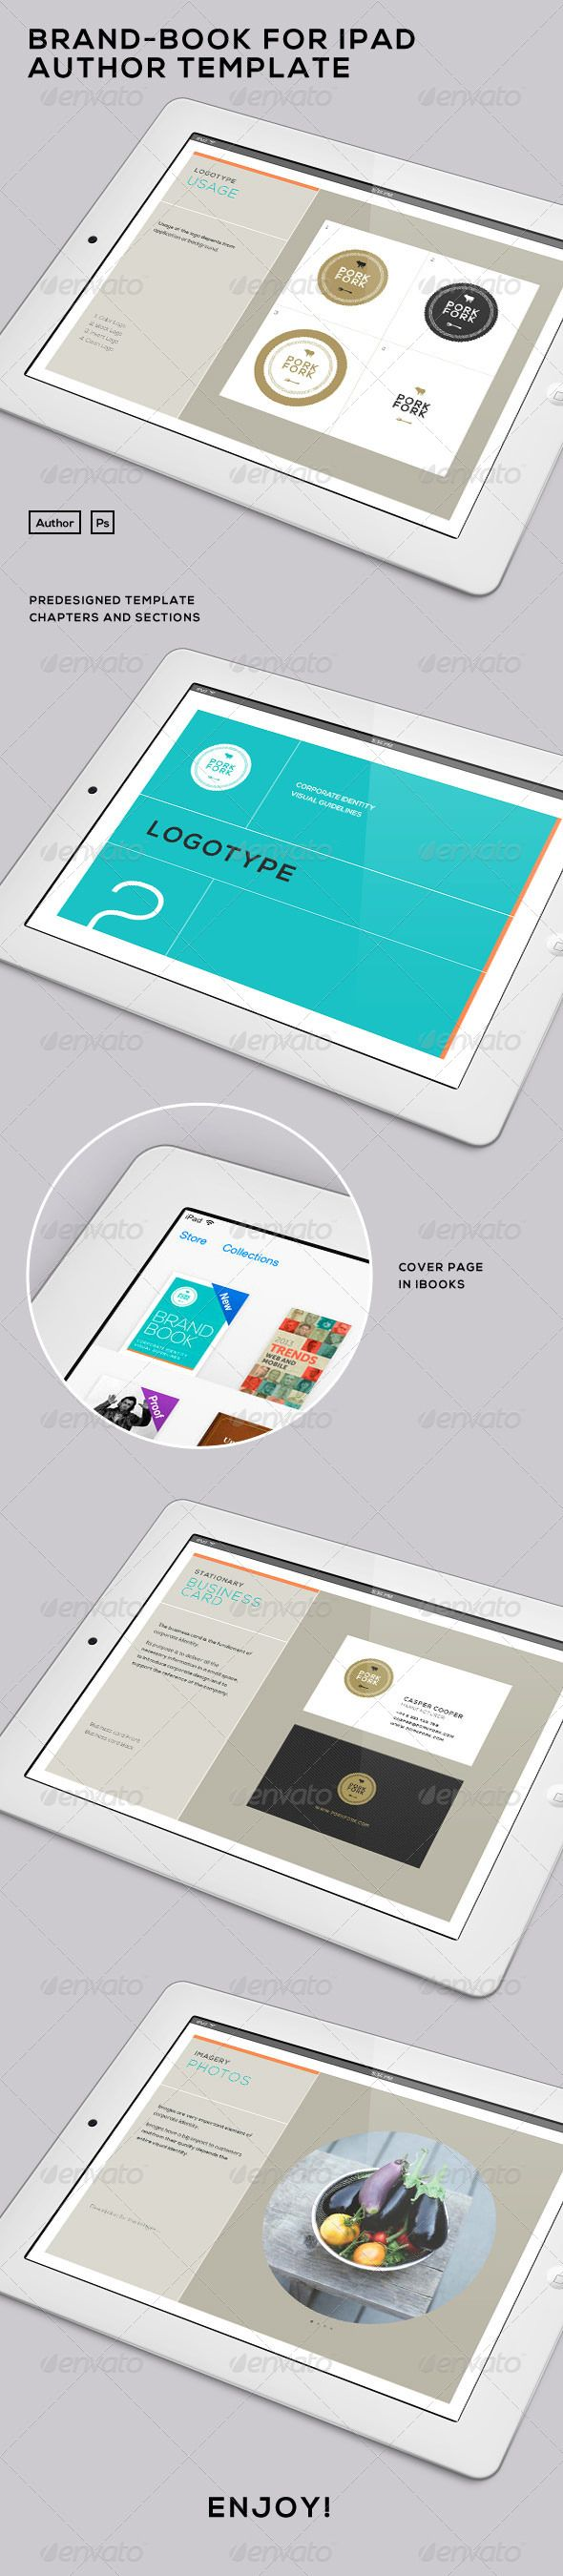 Brand Book for iPad - iBooks Author Template